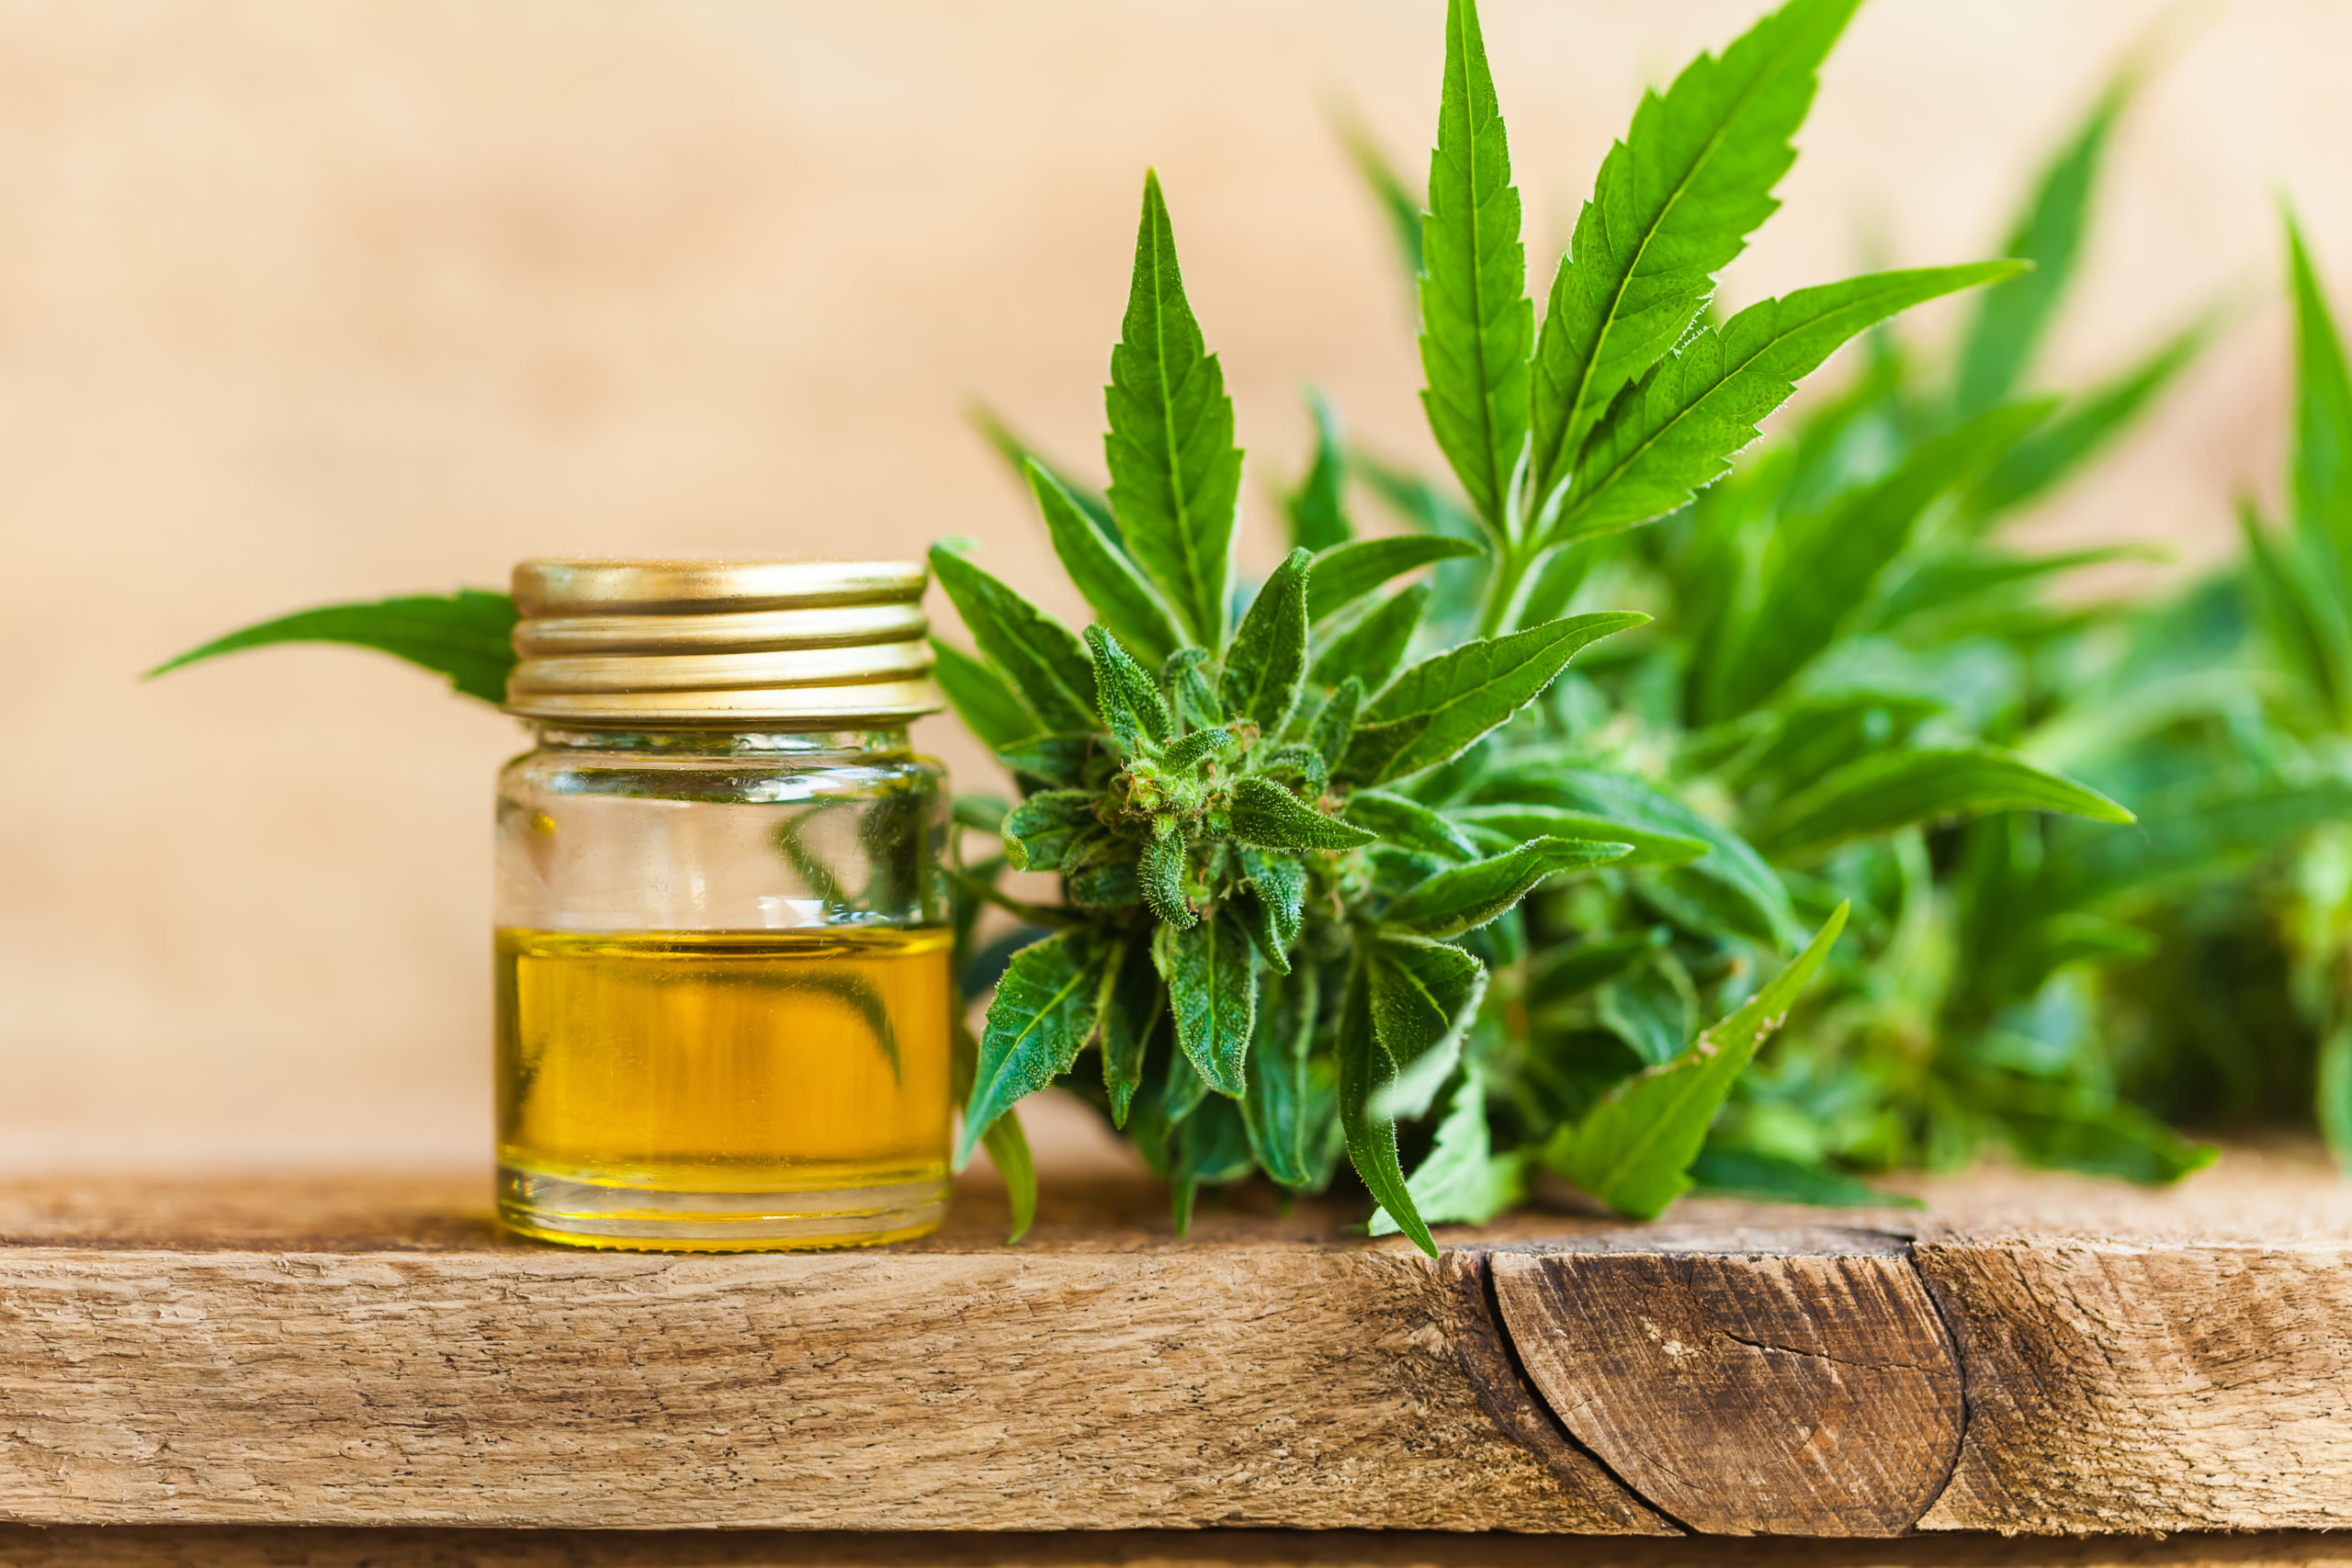 What Are The Various Significances Of Using Cannabinoid Oil?